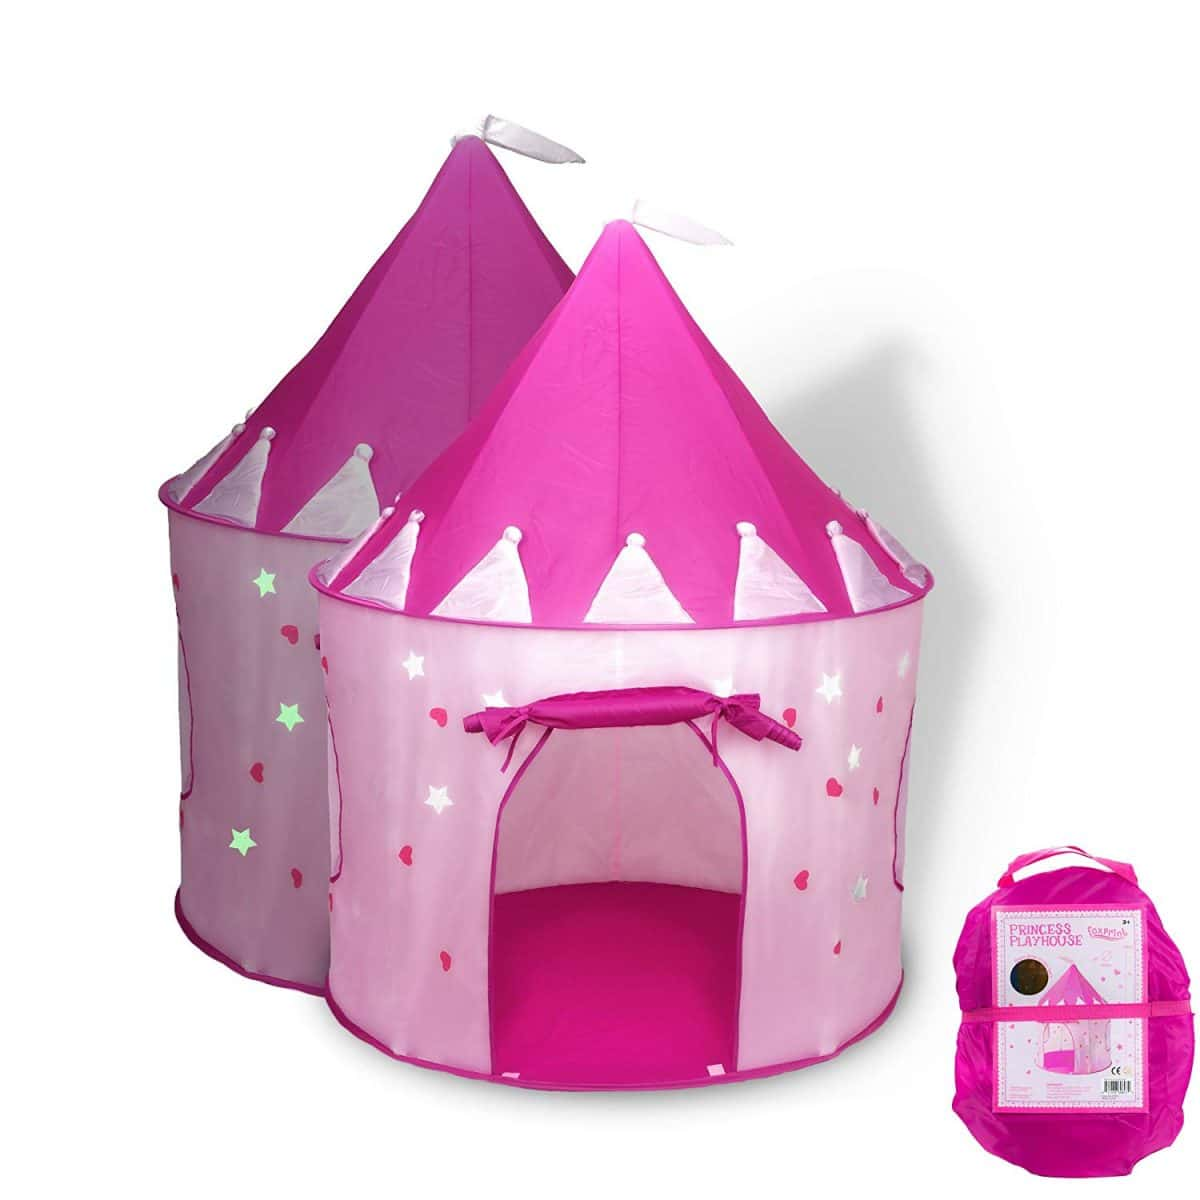 Lovne Kids Play Tent Children Bed Tent Playhouse for Boys Girls Fun Plays Christmas /& Birthday Gifts